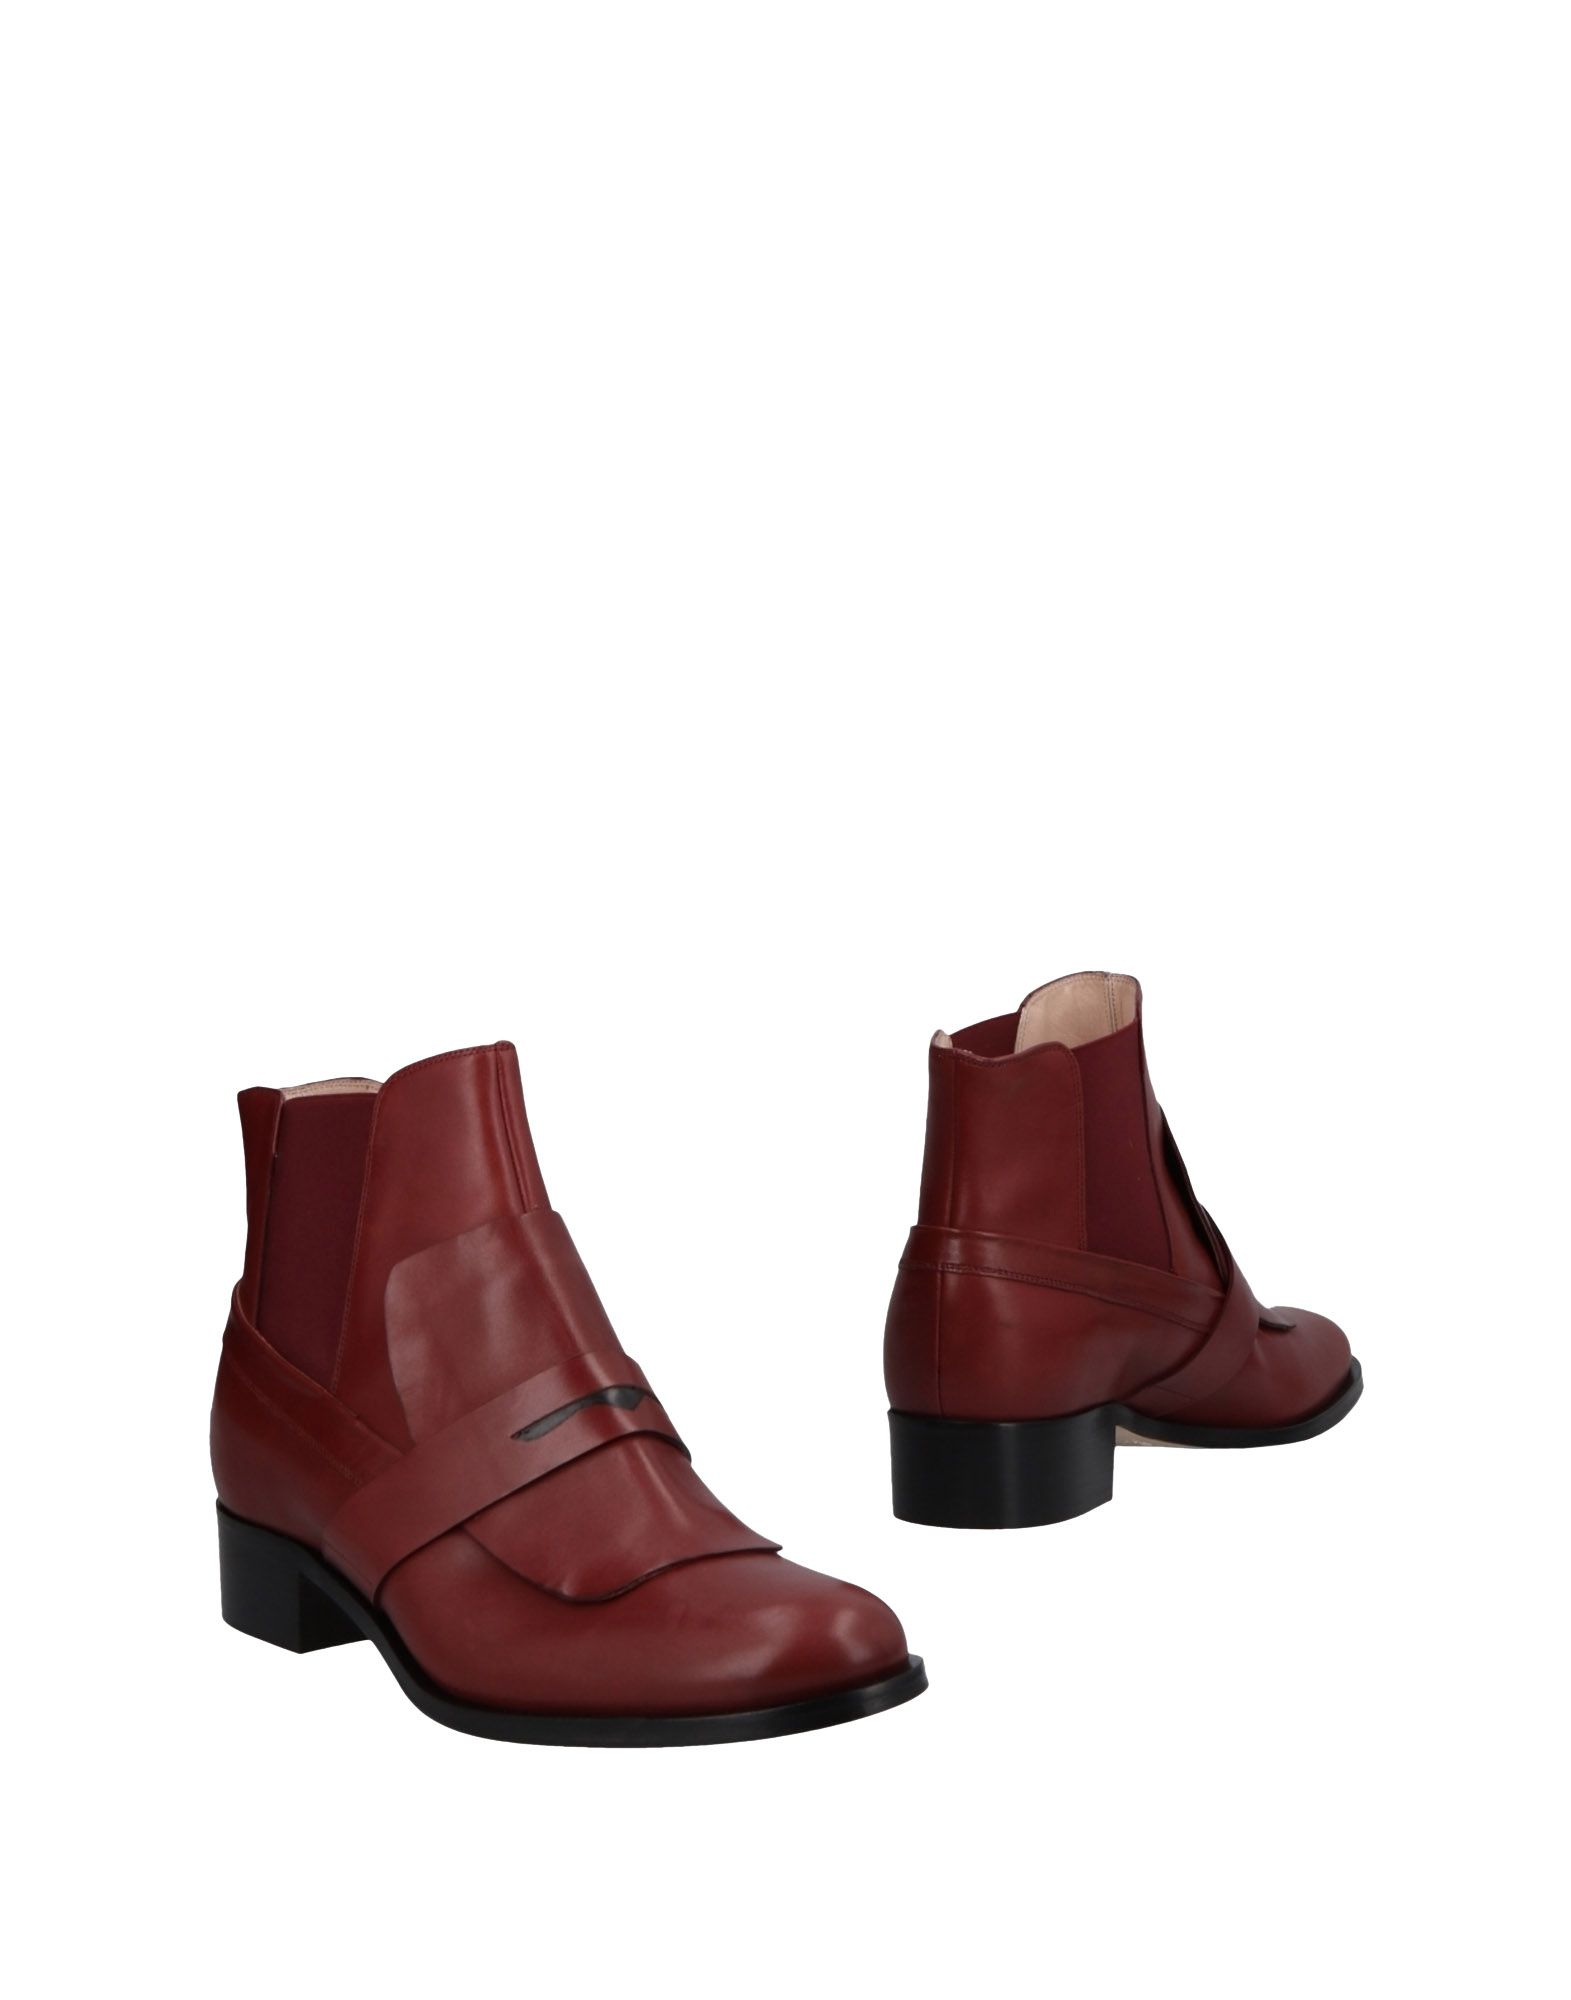 Cavallini Ankle Boot - Women Cavallini Ankle Ankle Ankle Boots online on  United Kingdom - 11484212LD 175594